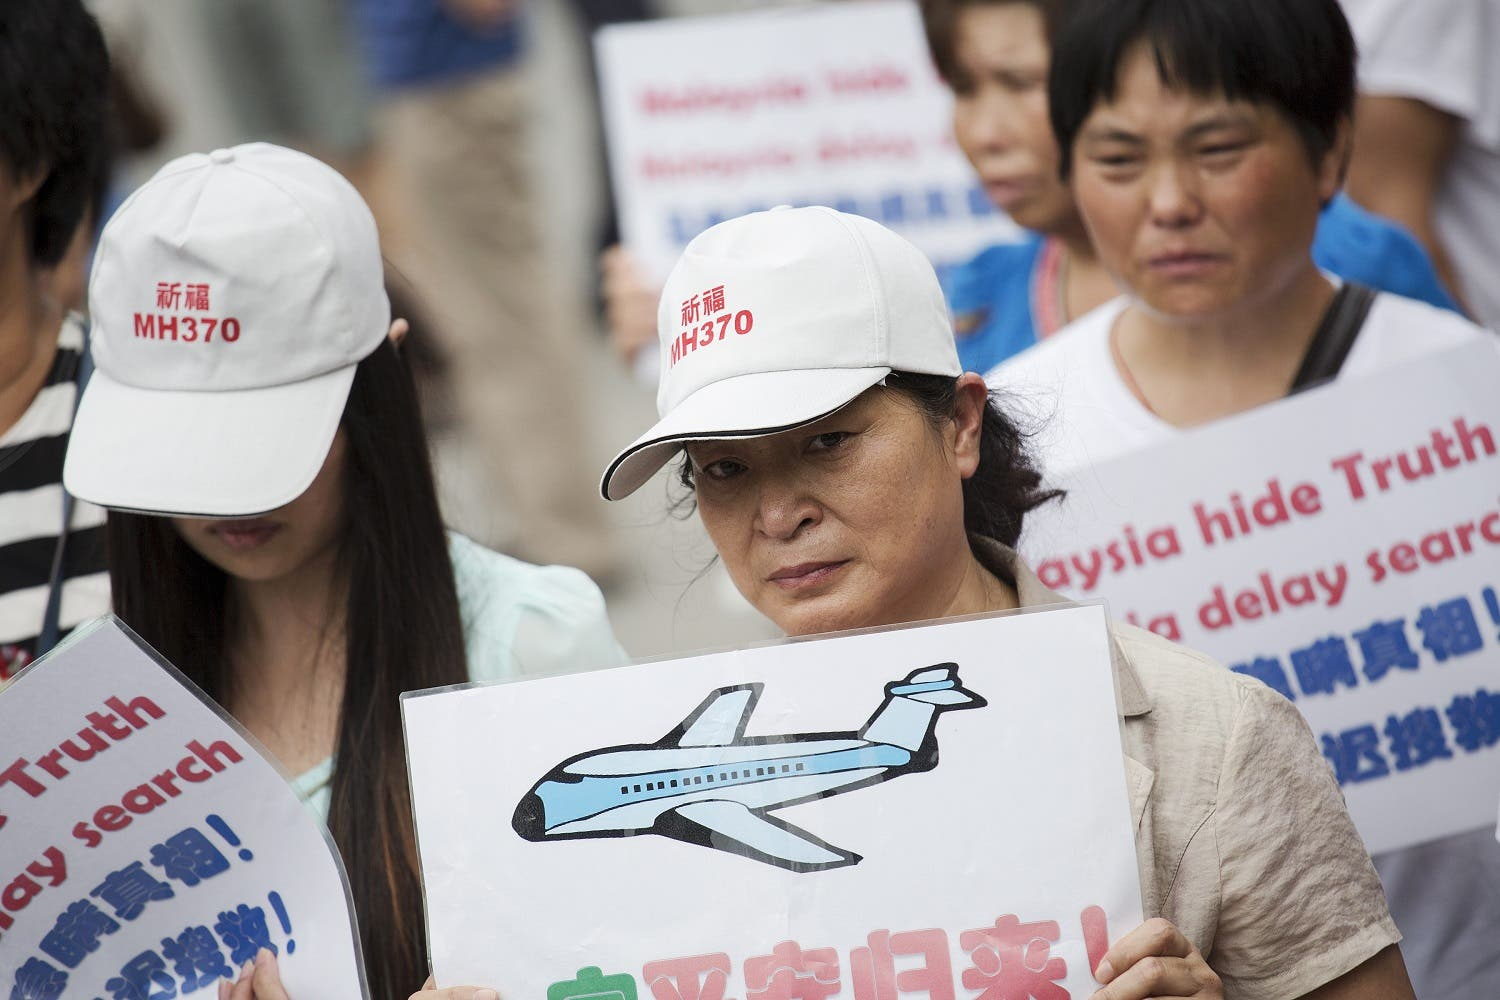 People whose relatives were aboard Malaysia Airlines flight MH370 hold placards as they protest near the Malaysian embassy in Beijing August 7, 2015. Angry relatives of Chinese passengers aboard a Malaysia Airlines plane missing for more than a year clashed with police in Beijing on Friday as French officials extended the search for debris on remote Indian Ocean island beaches. REUTERS/Damir Sagolj